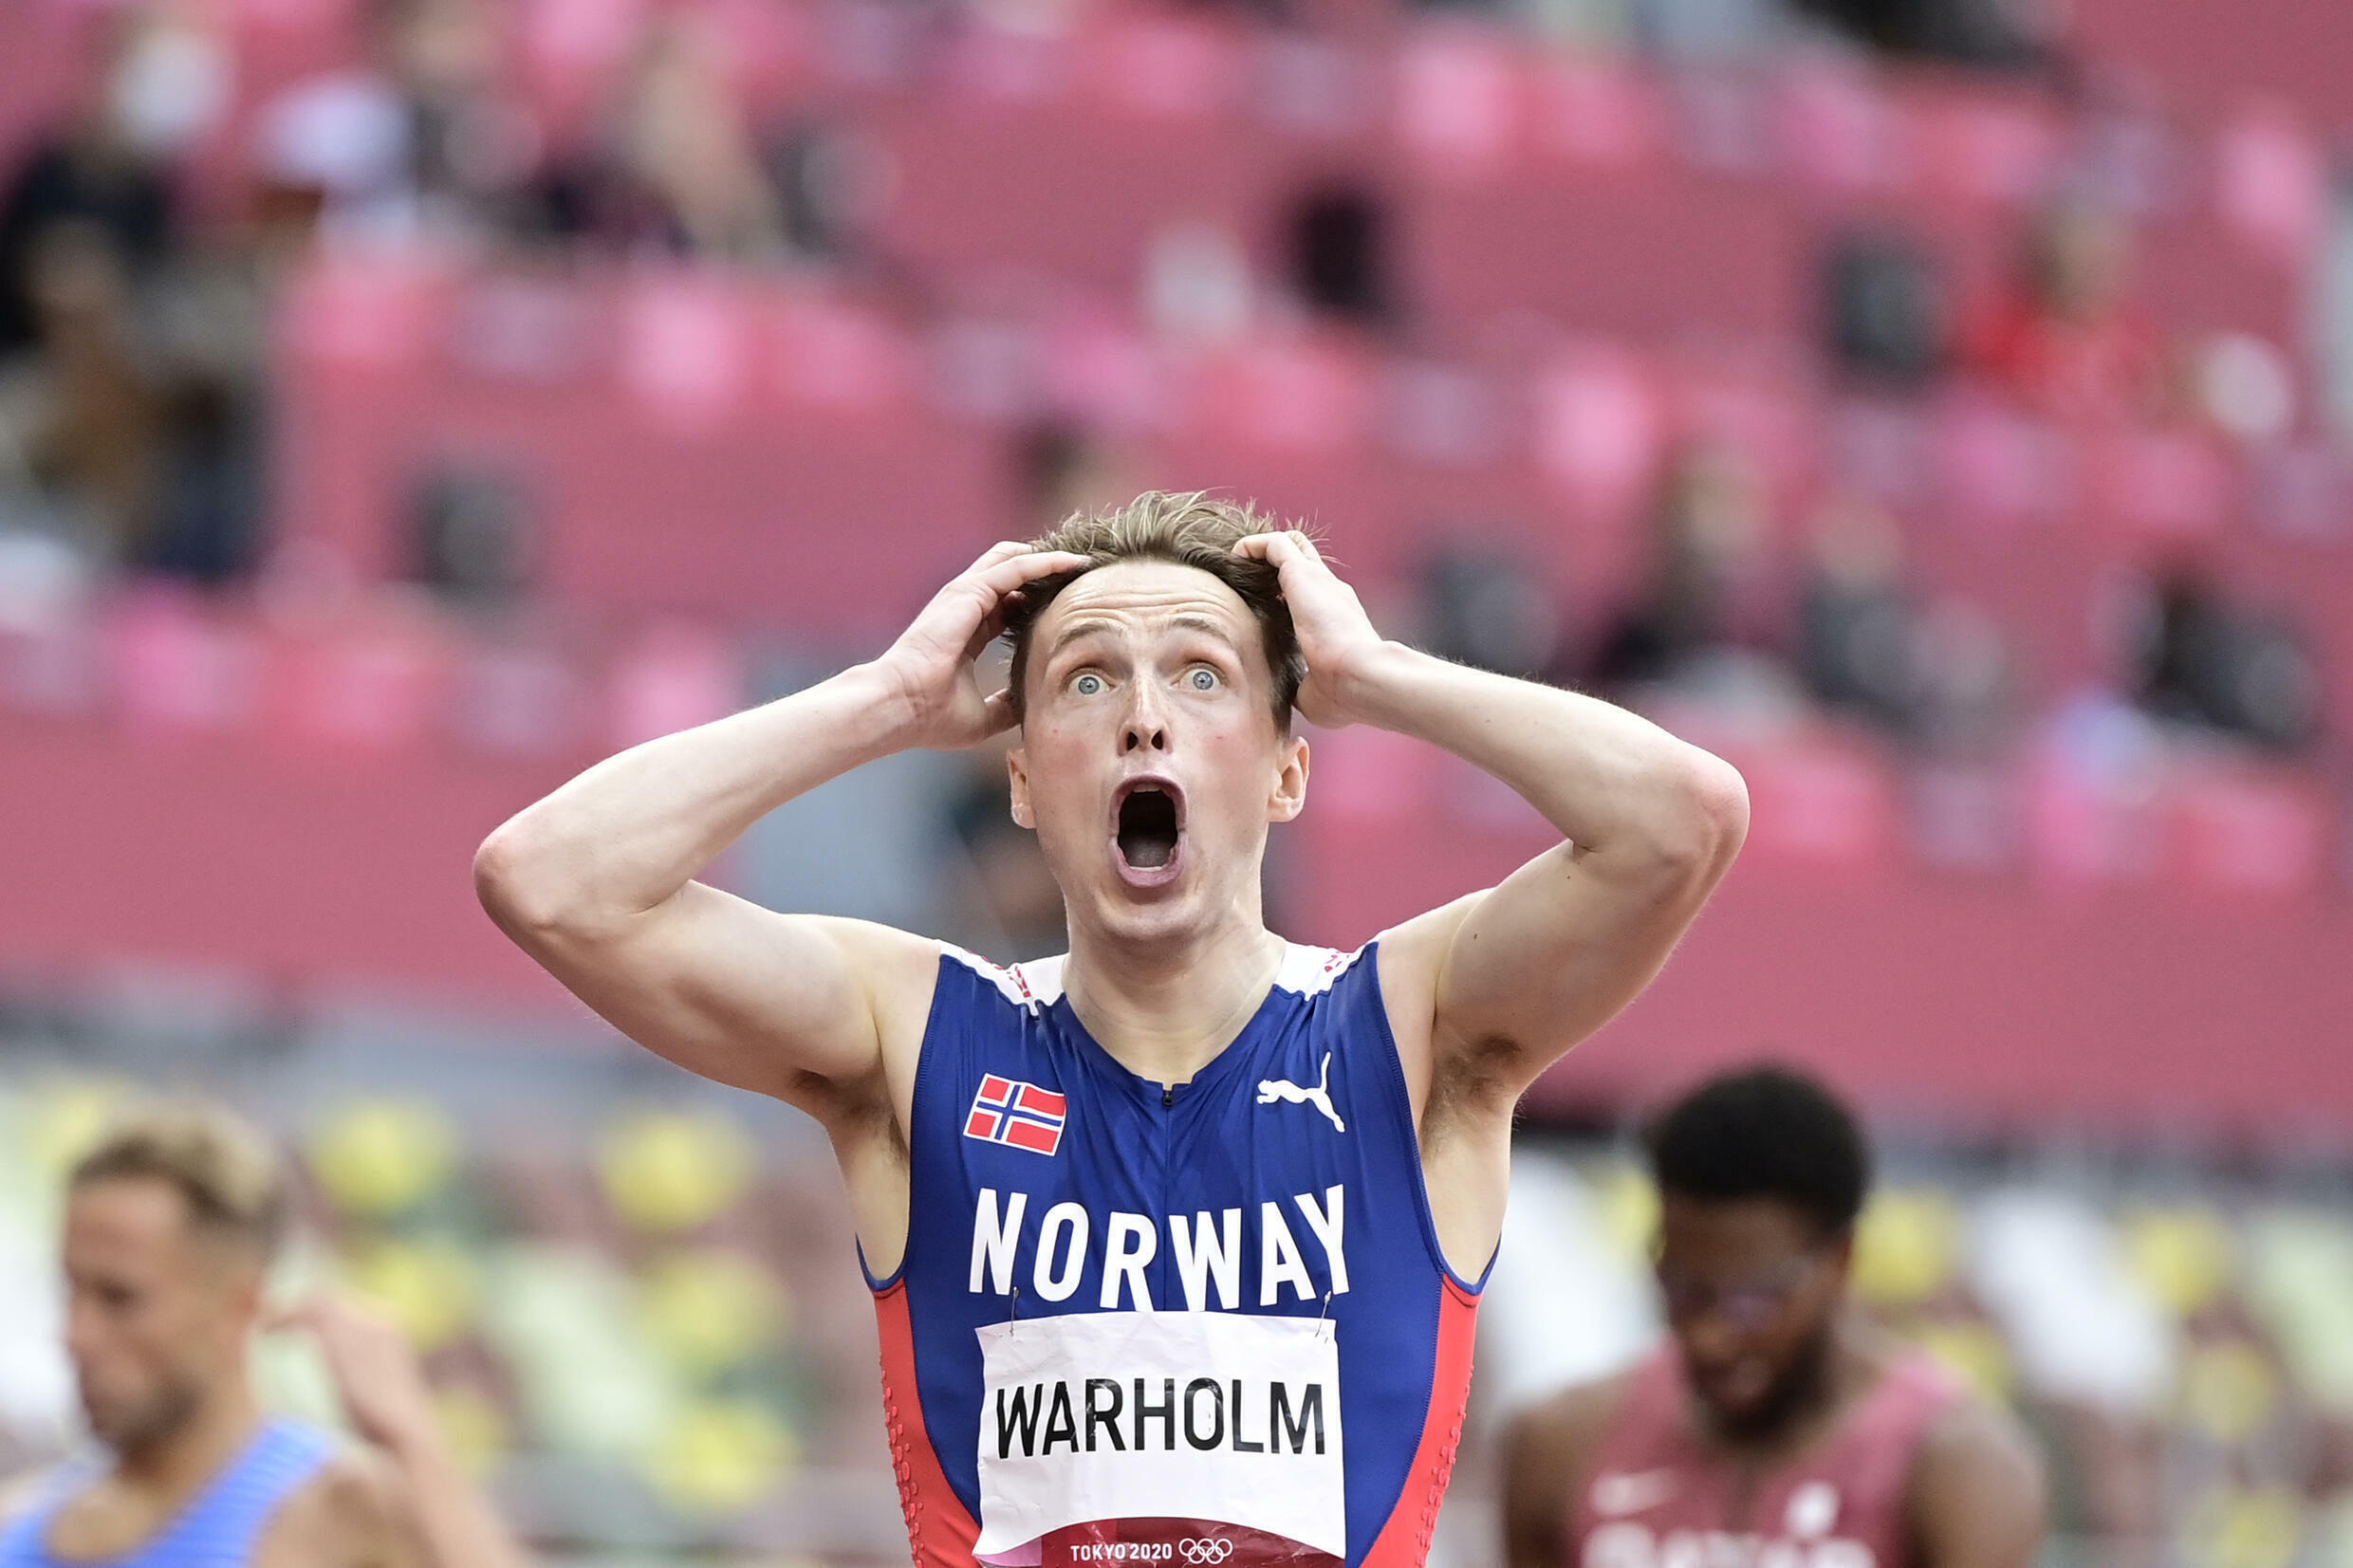 Norway's Karsten Warholm obliterated his own world record to win 400m hurdles Olympic gold